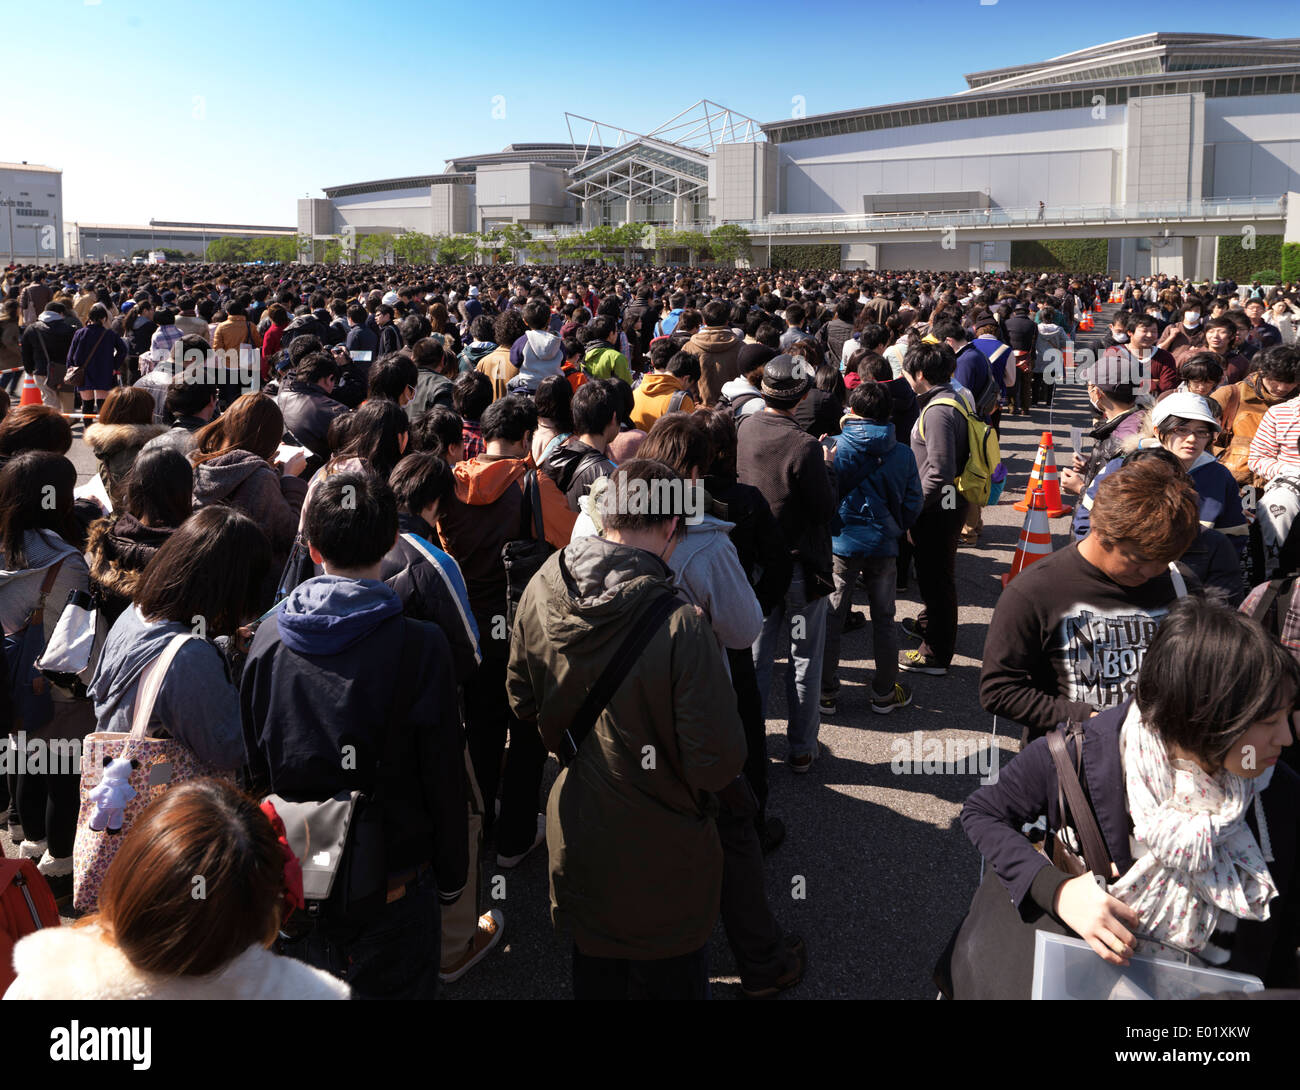 Long line of people at Tokyo Big Sight Exhibition Center during AnimeJapan Tokyo International Anime Fair. Tokyo, - Stock Image